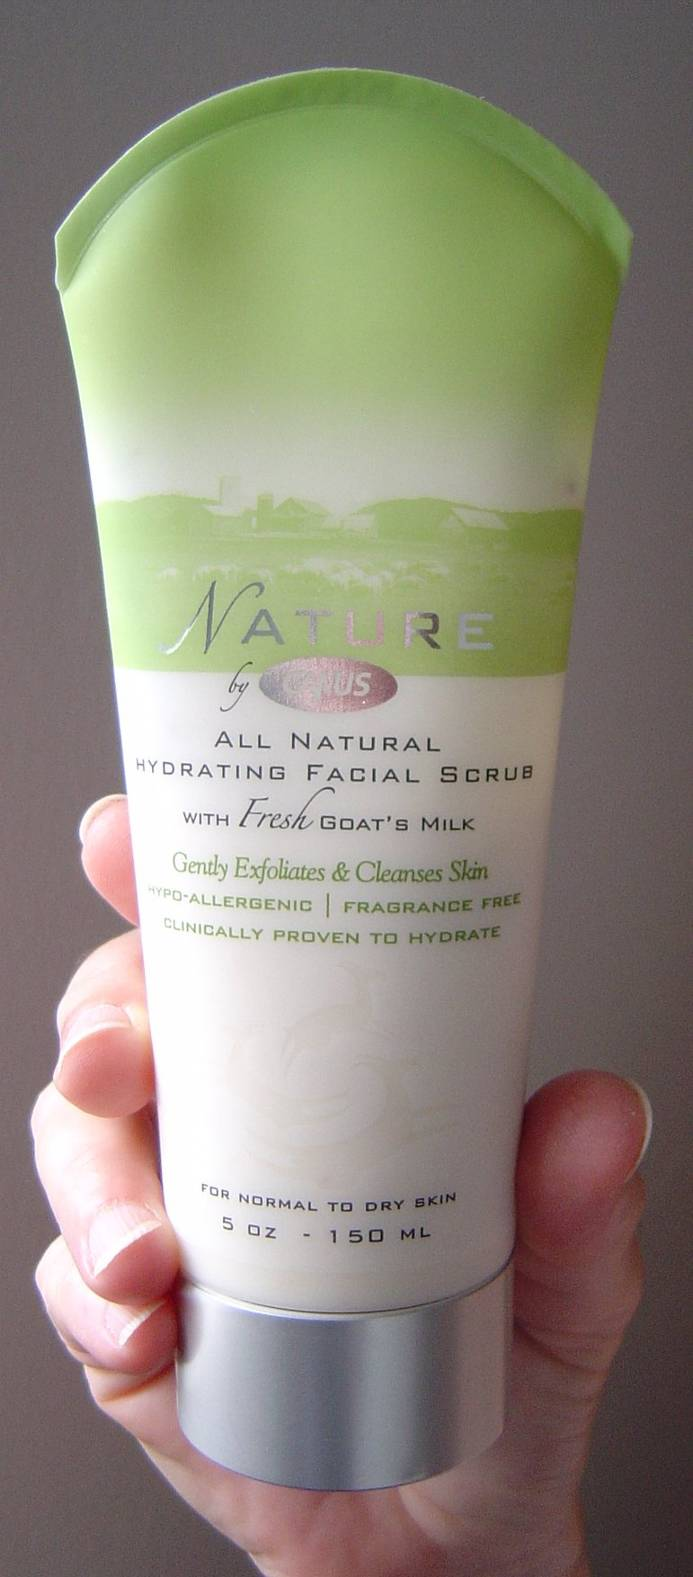 Nature by Canus Hydrating Facial Scrub